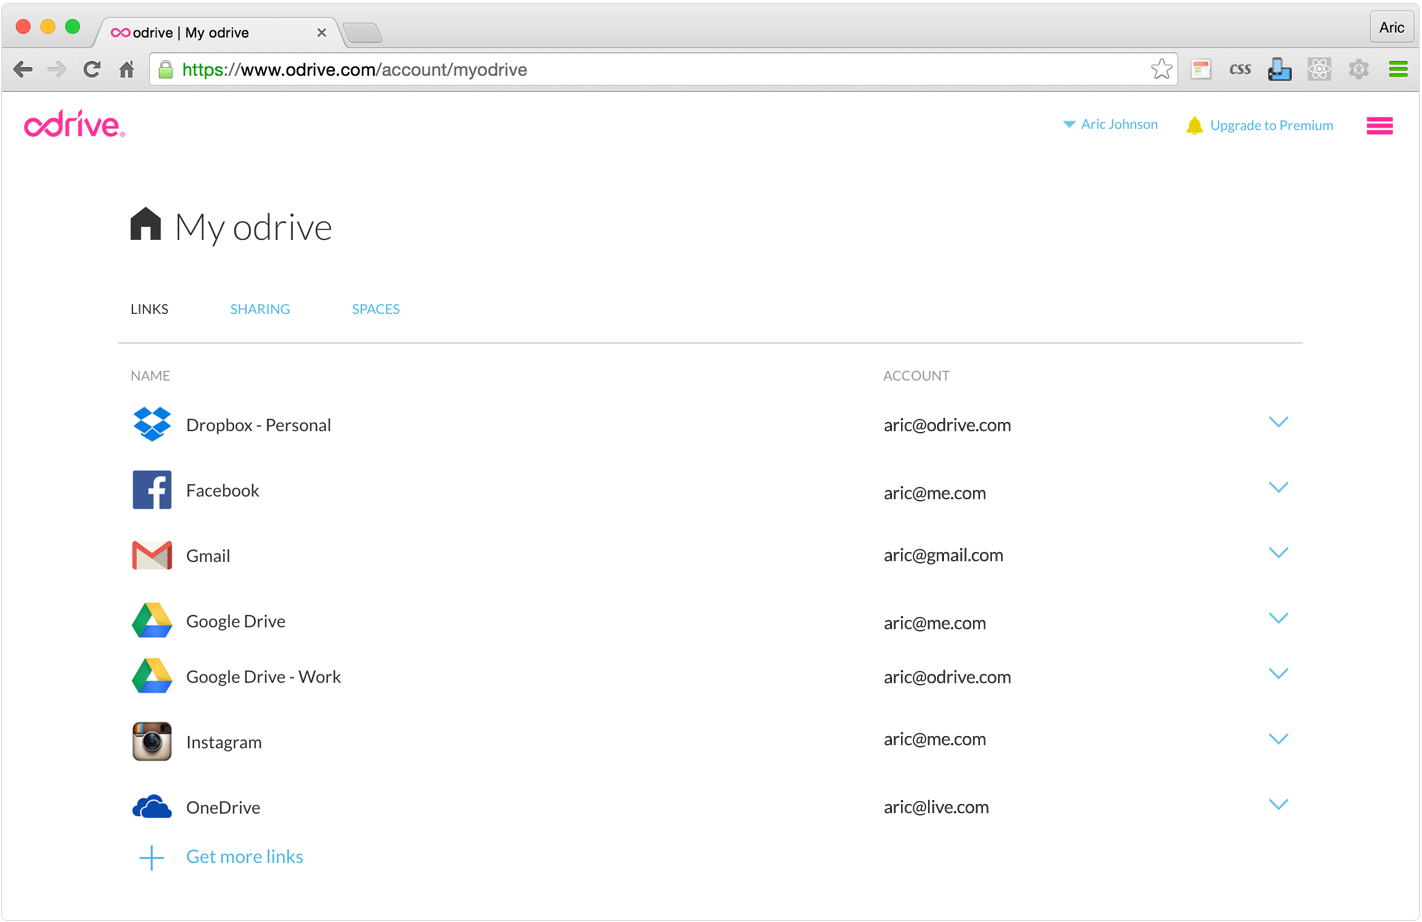 View of multiple Google Drives linked